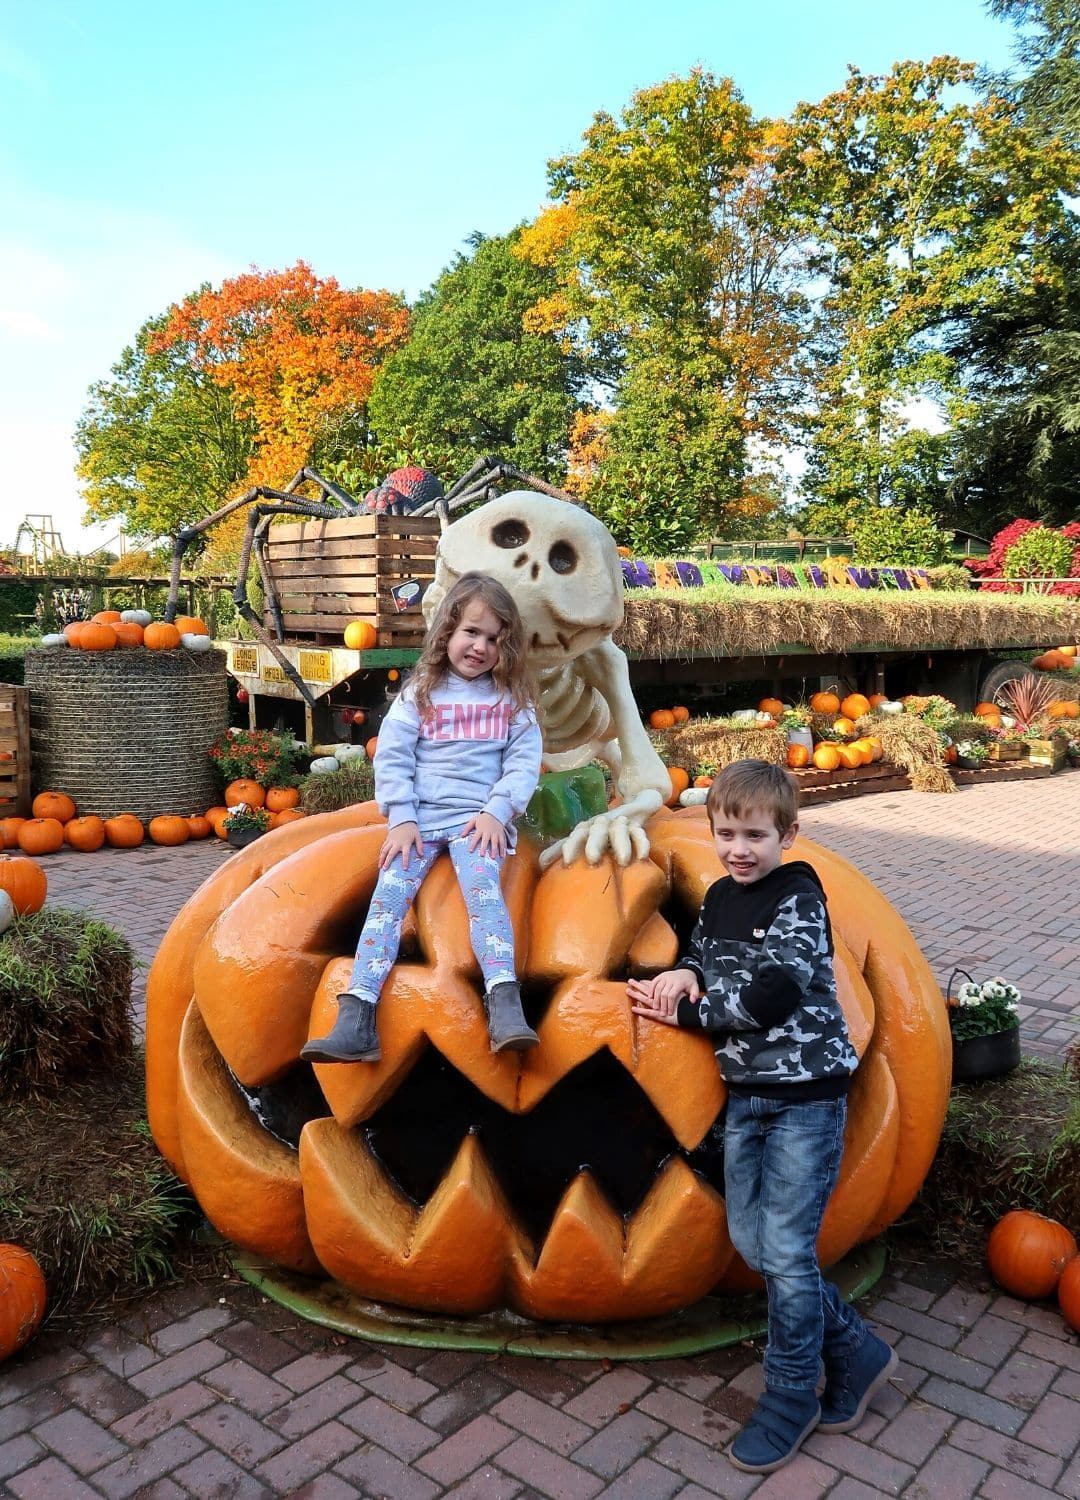 Giant Pumpkin outside Paulton's Park with Biggest and Littlest posing - Paulton's Park review